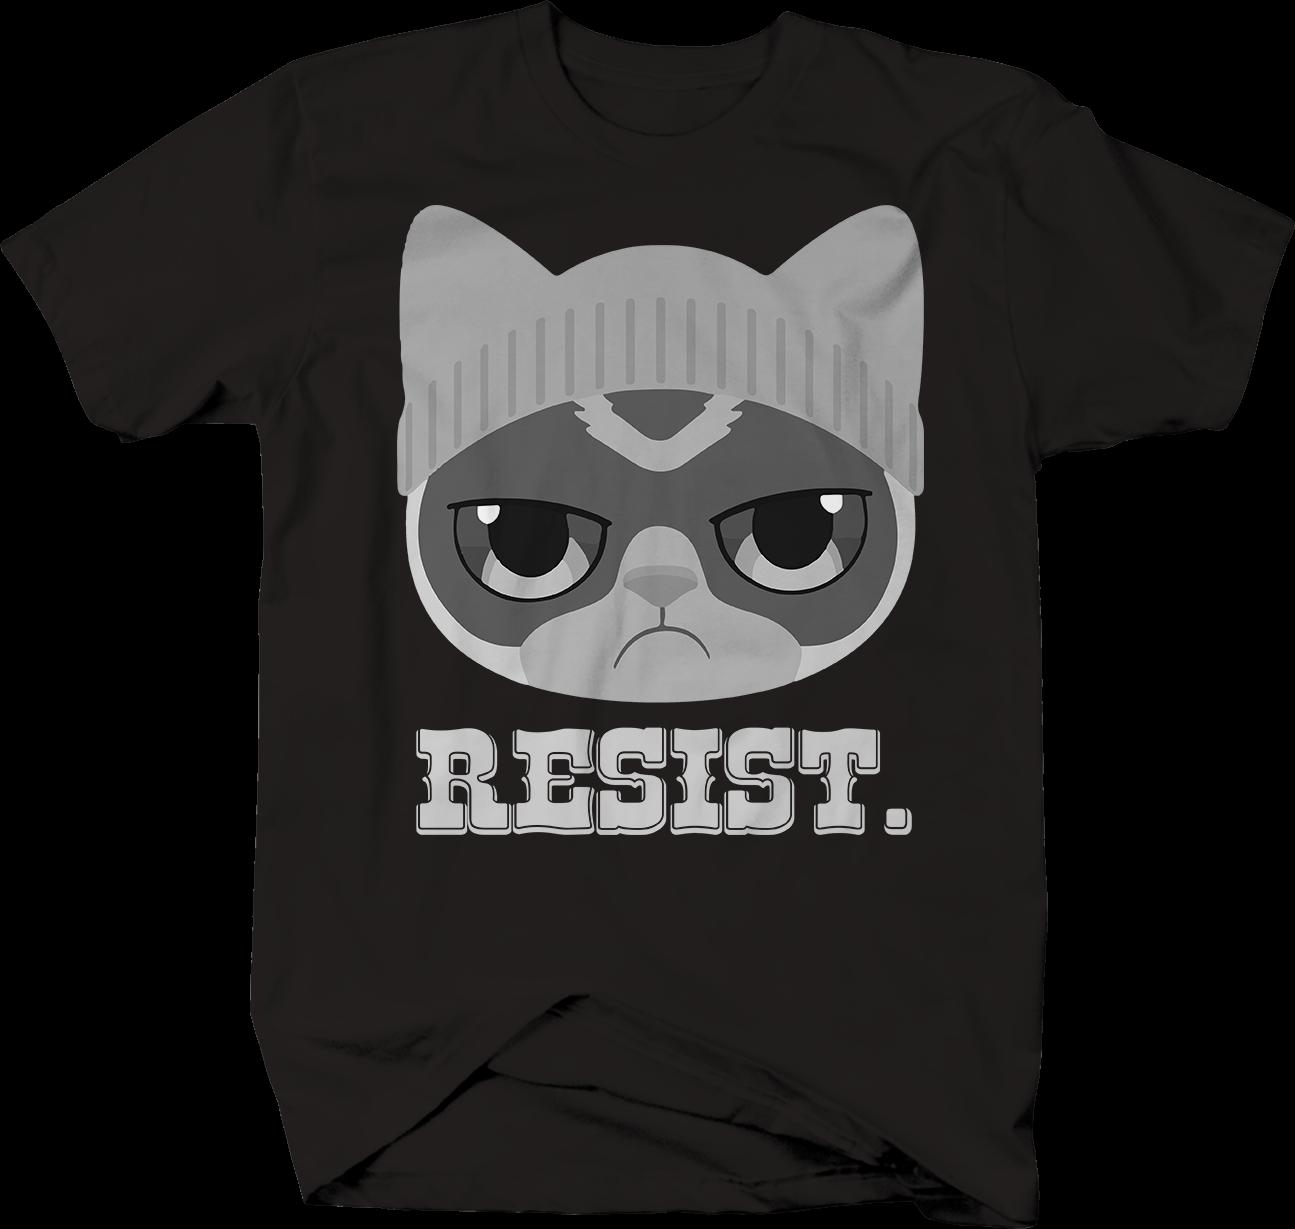 Resist Pussy Cat Hat Trump Protest T Shirt Classic Quality High Size  Discout Hot New Tshirt Retro Tees Weird T Shirts From Sevencup, $16.24|  DHgate.Com